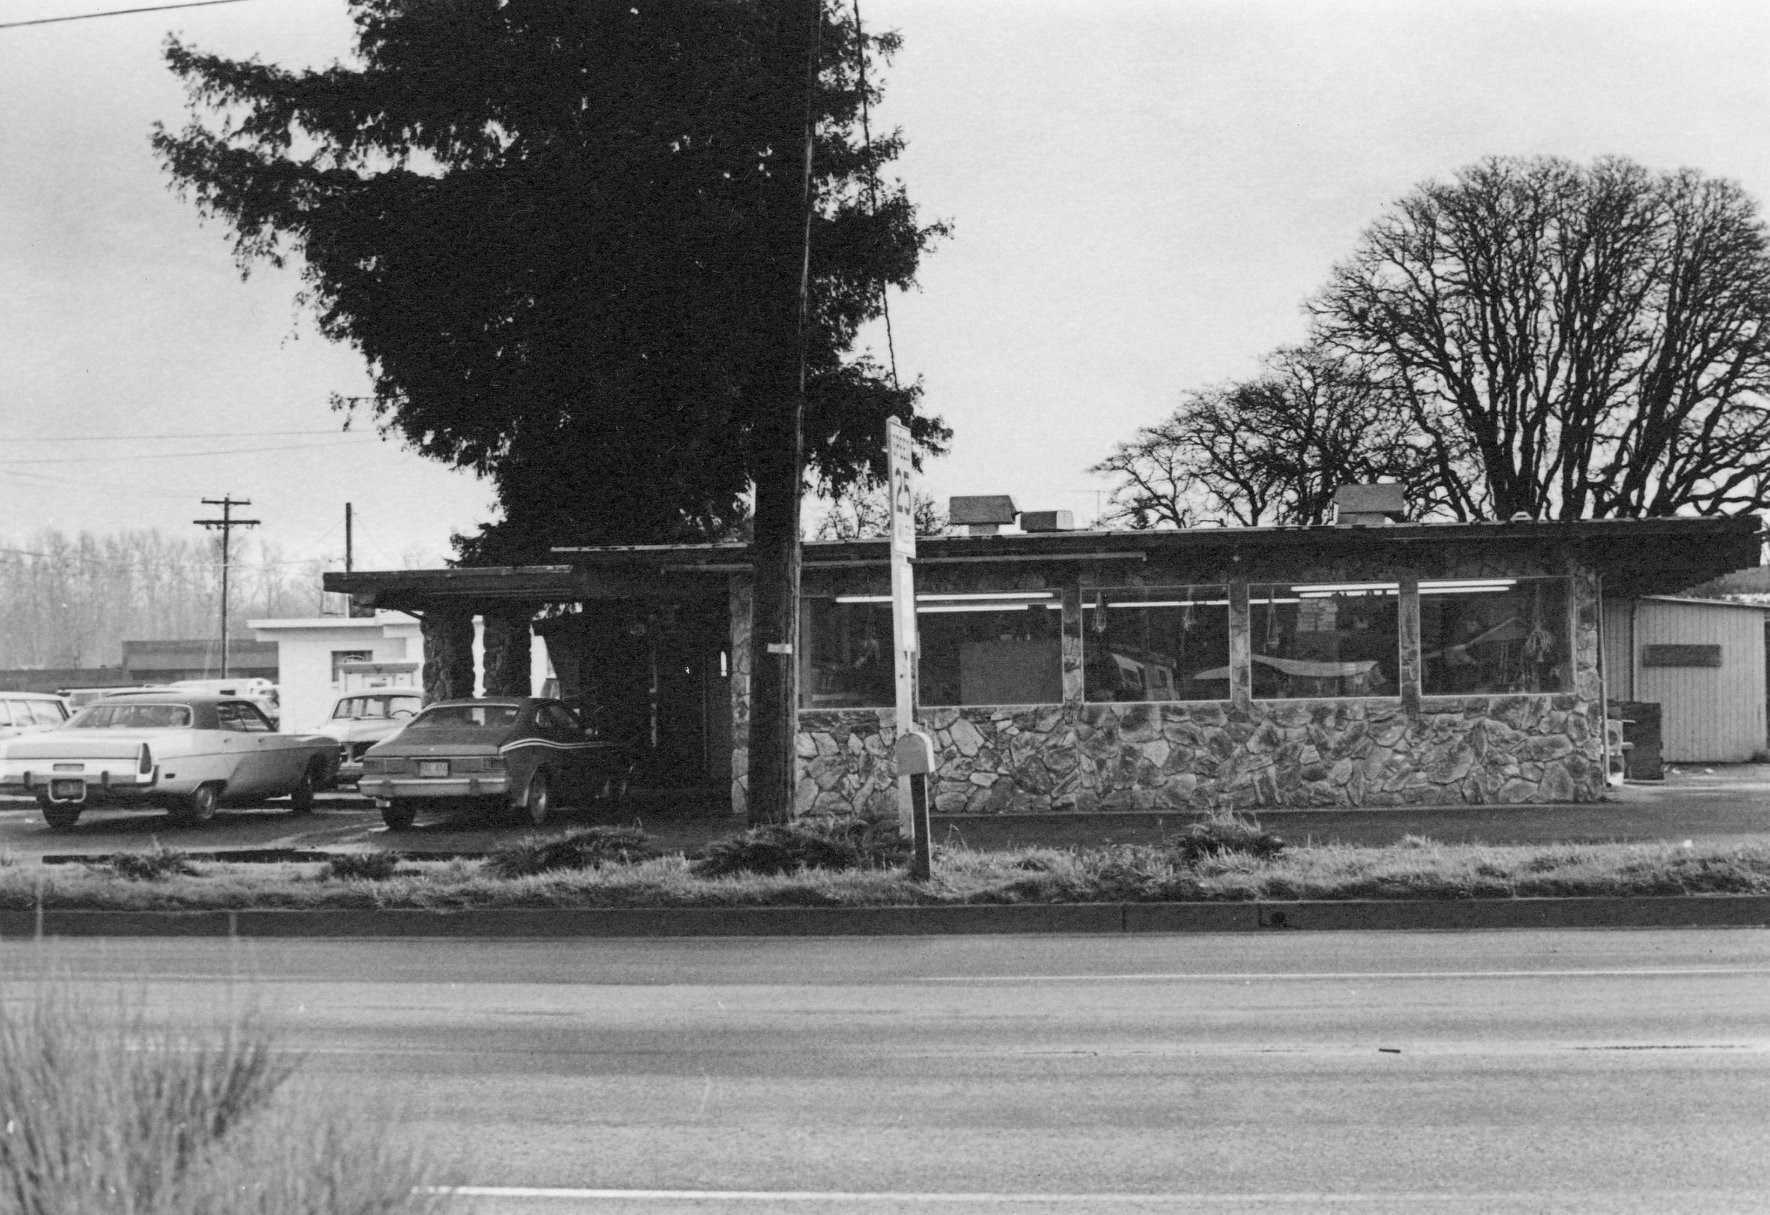 South Store in 1970s